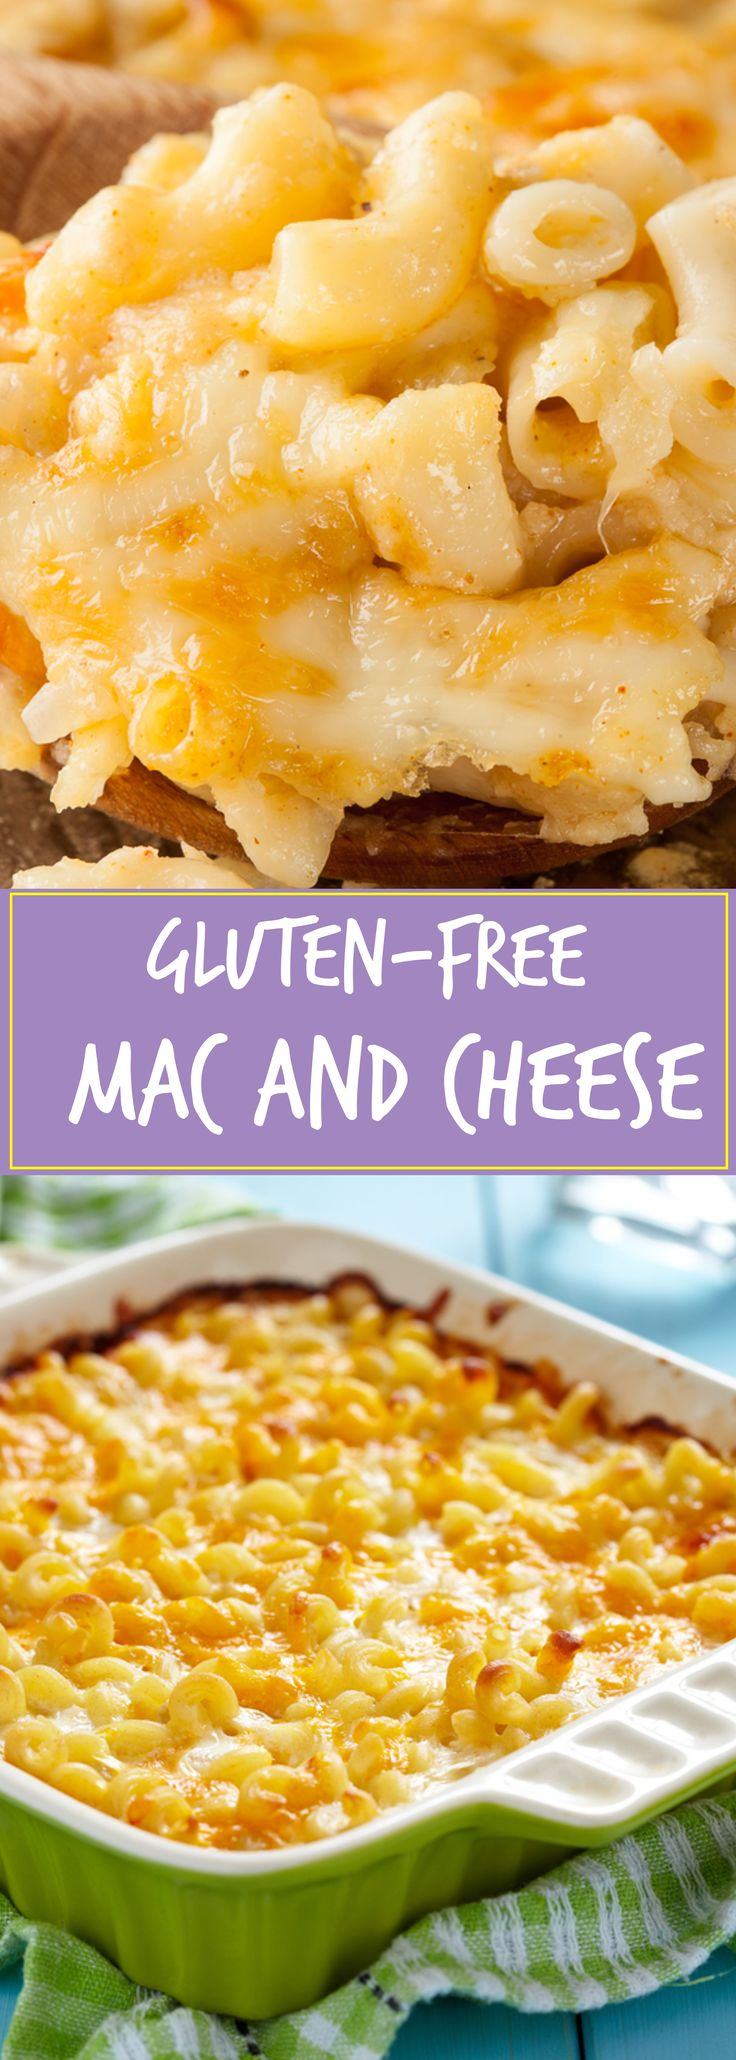 Homemade Gluten Free Mac and Cheese // agirlworthsaving.net // #homemade #glutenfree #realfood #comfortfood